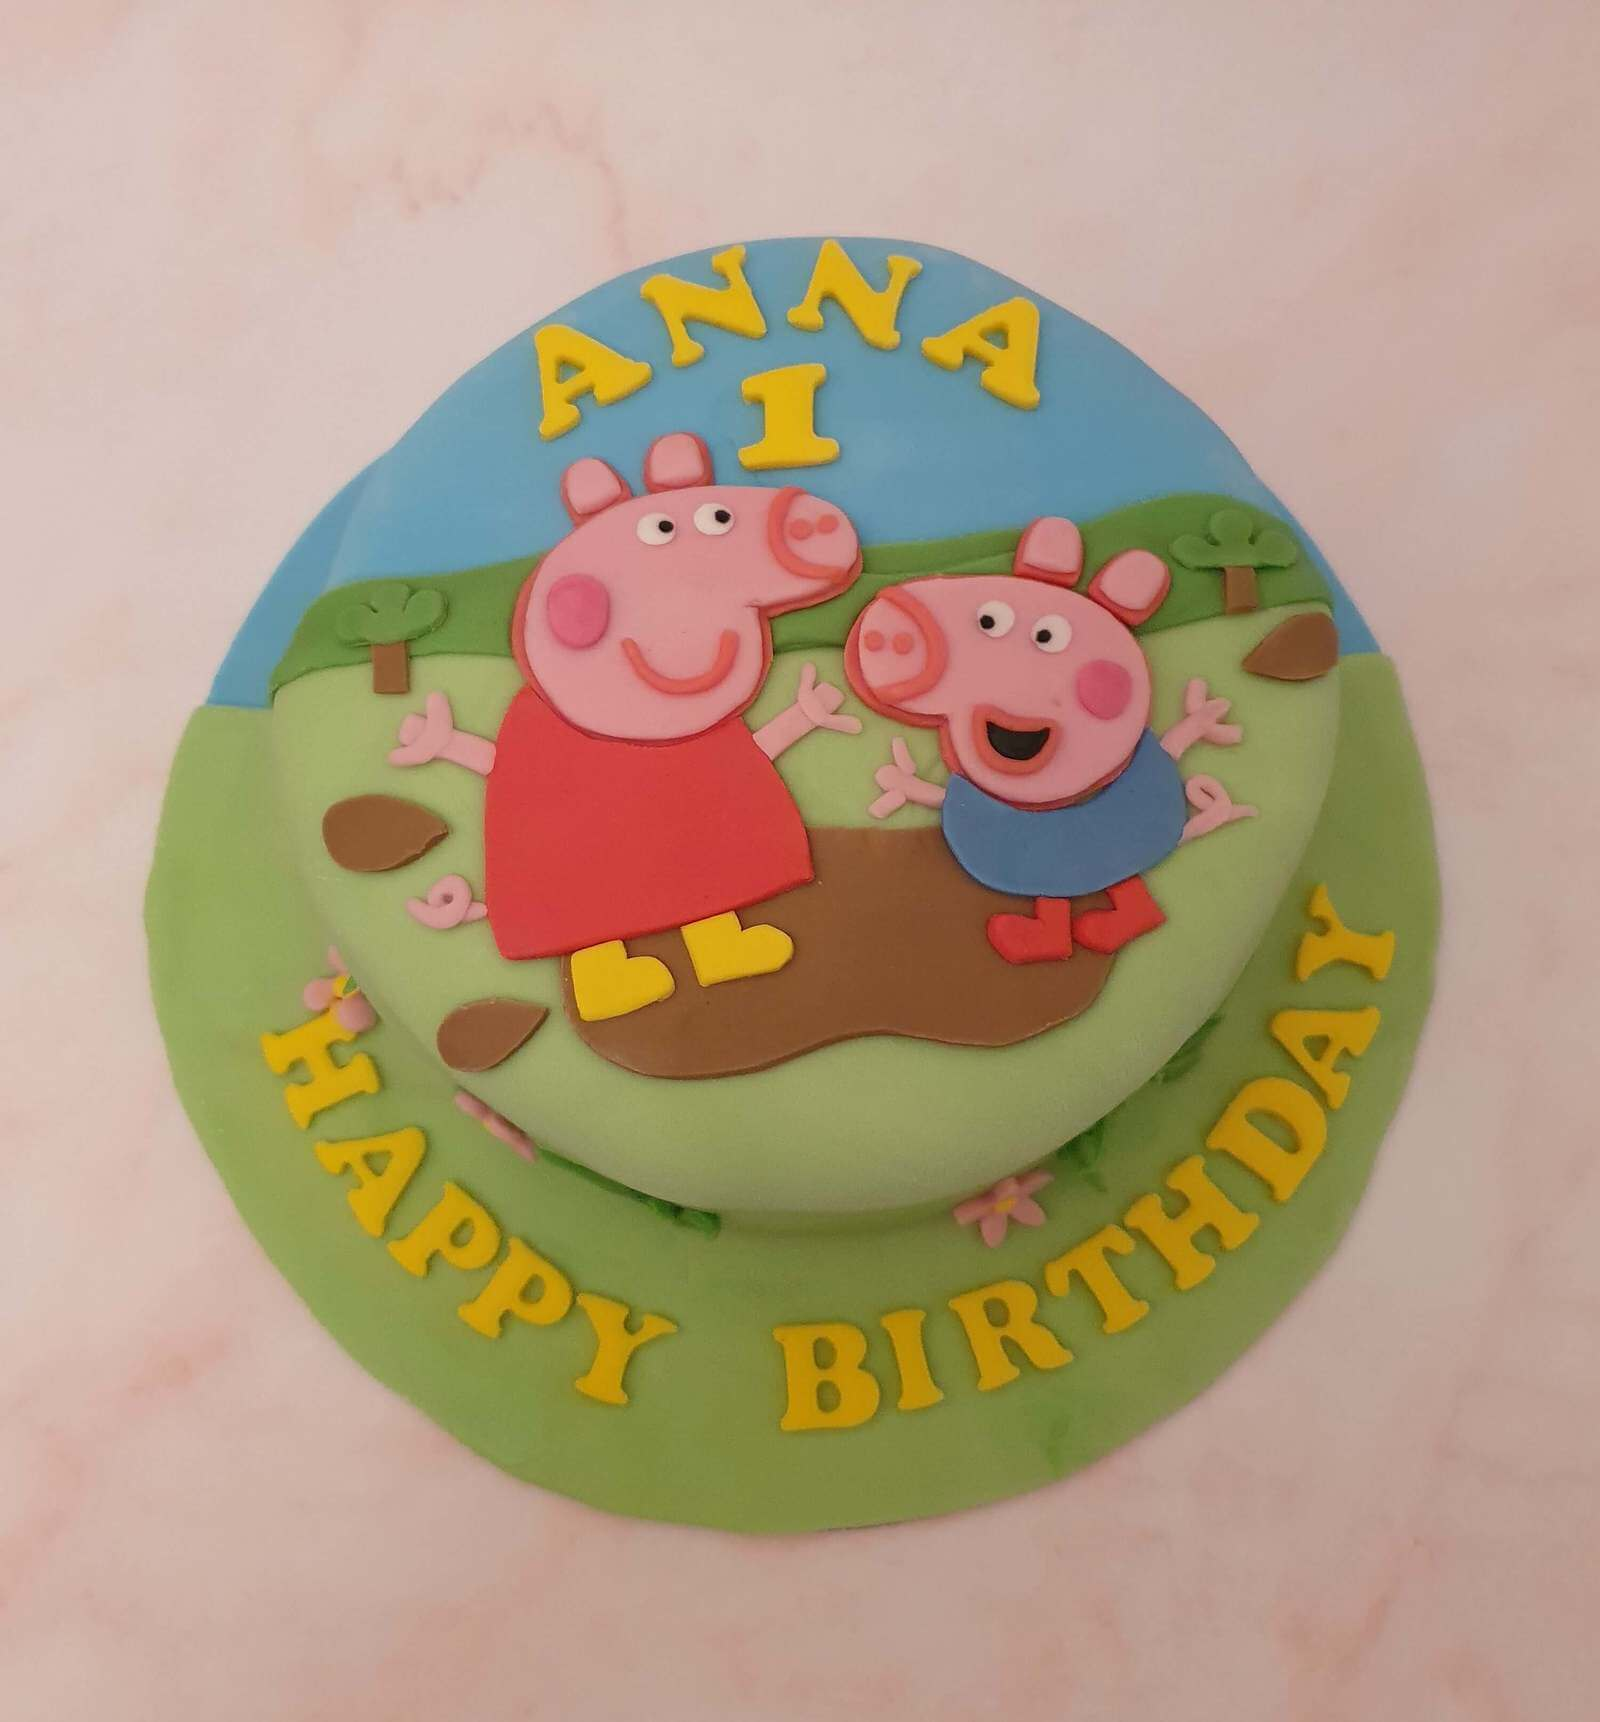 Peppa Pig and George splashing in a puddle in front of grass trees and blue sky on a 1st birthday cake that says happy birthday in yellow around the bottom